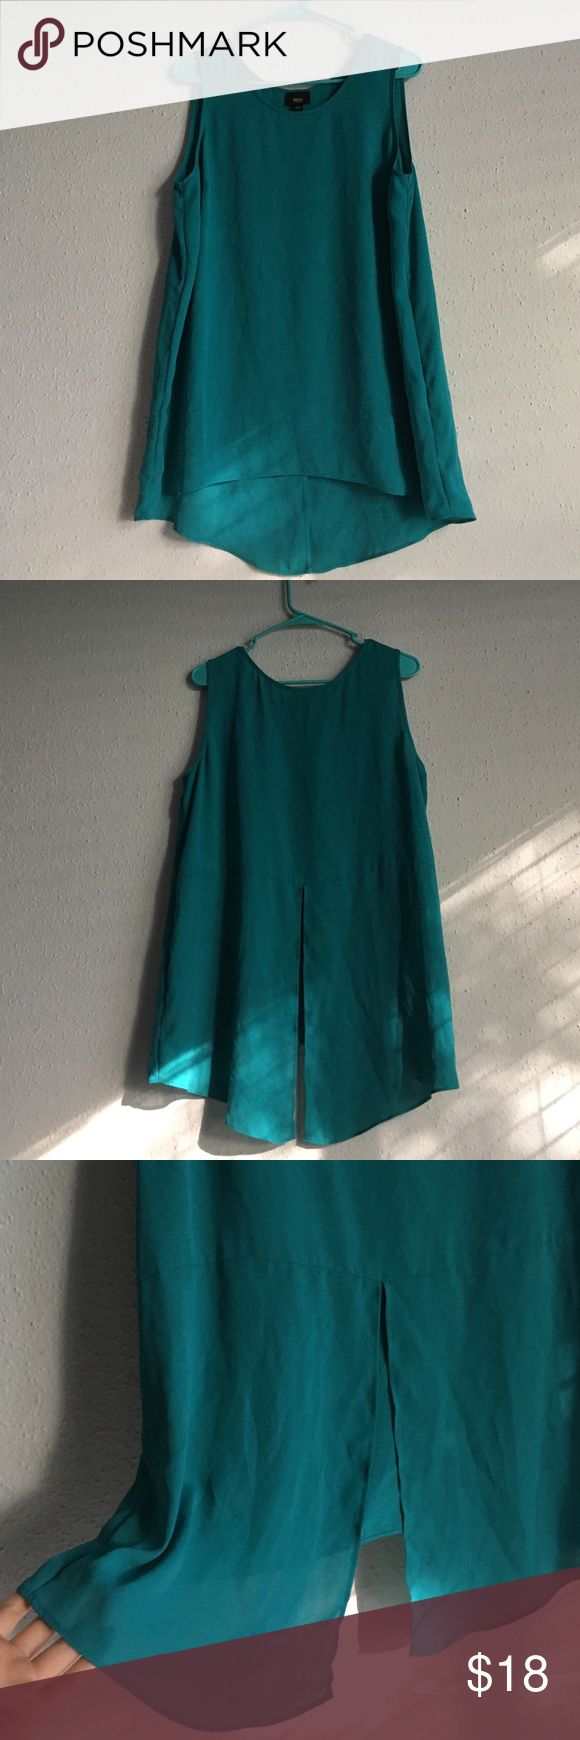 top ideas about s interview questions teal sleeveless blouse light polyester sleeveless blouse top back slit lower back i